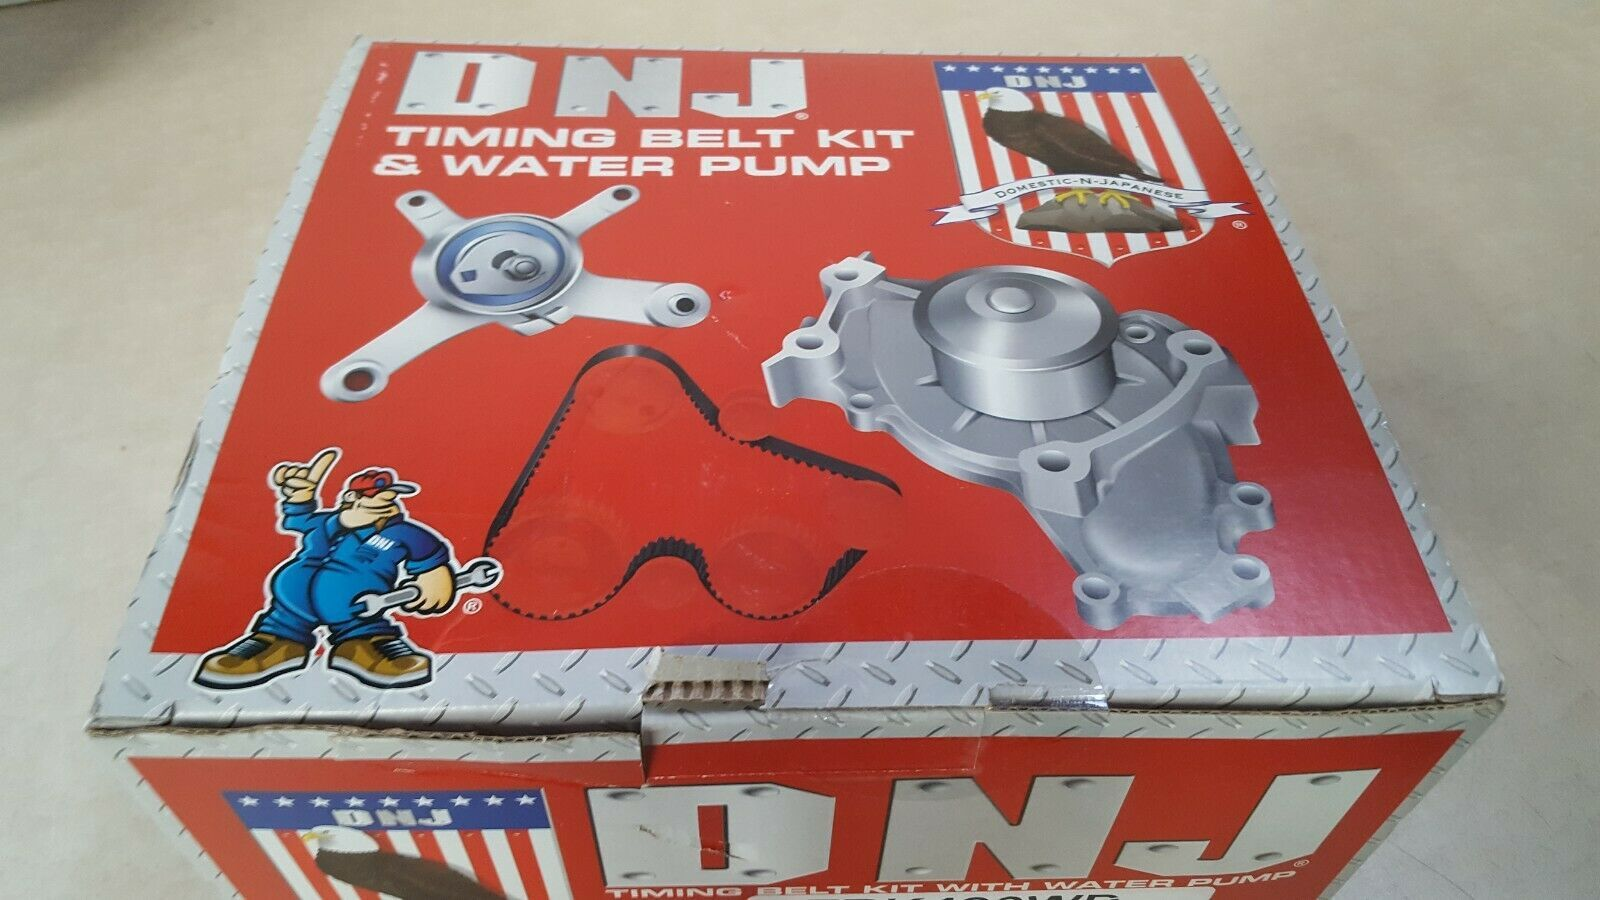 DNJ TBK490WP Timing Belt Kit With Water Pump